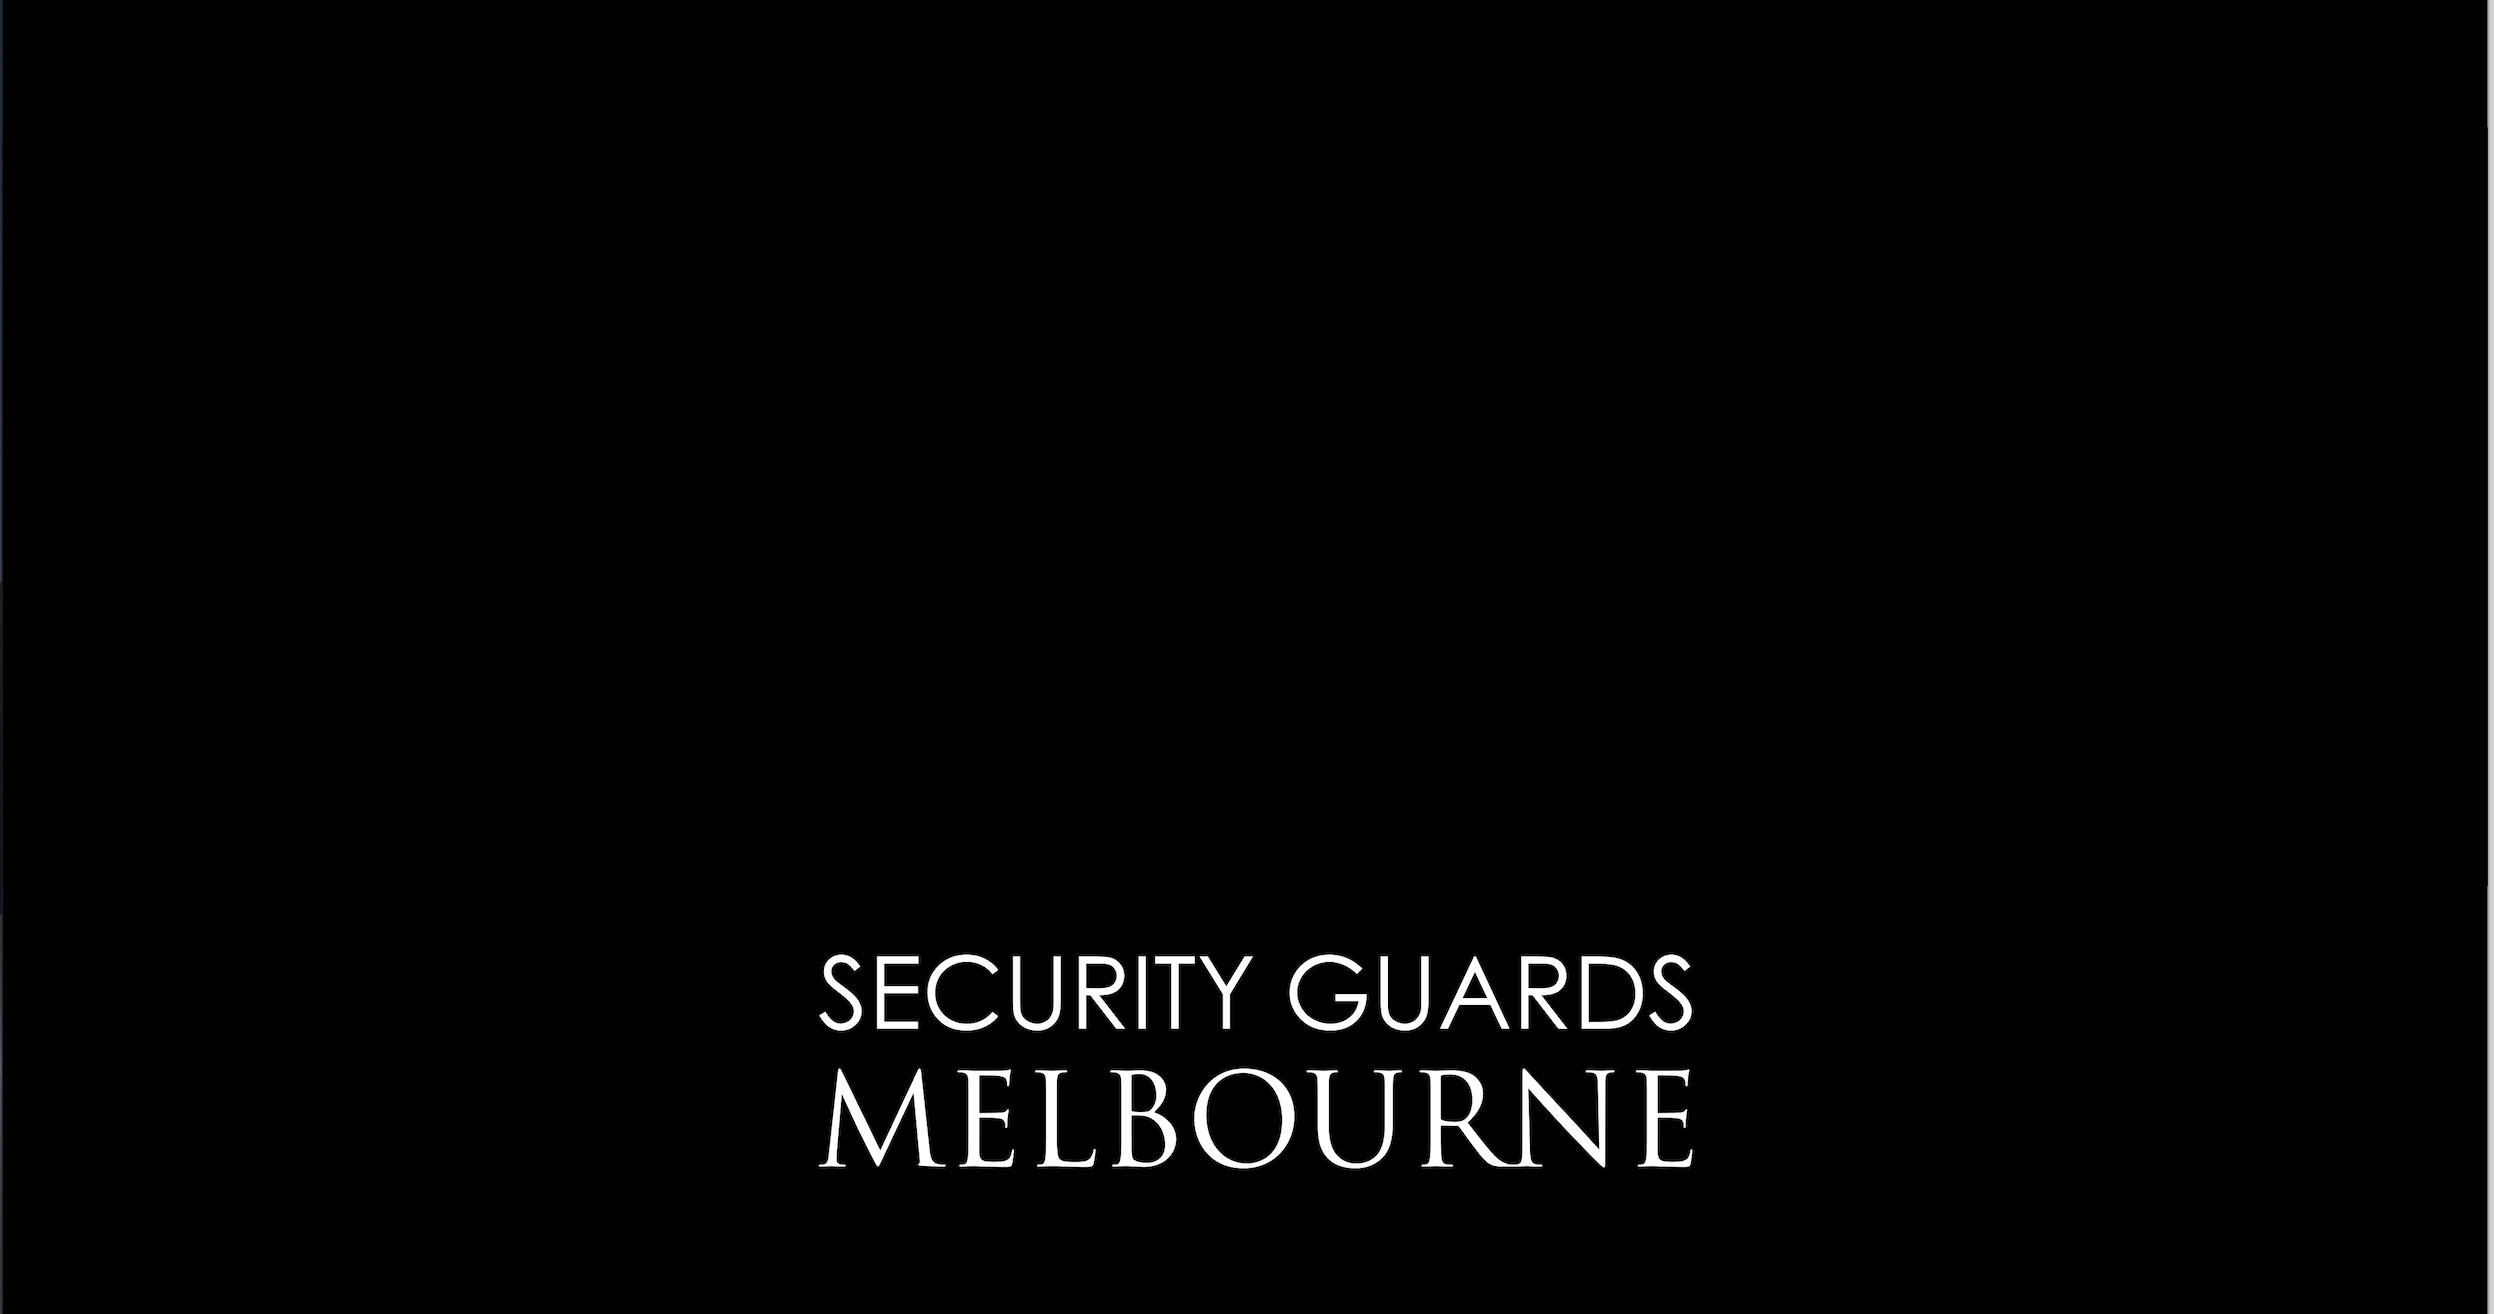 Contact Security Guards Melbourne